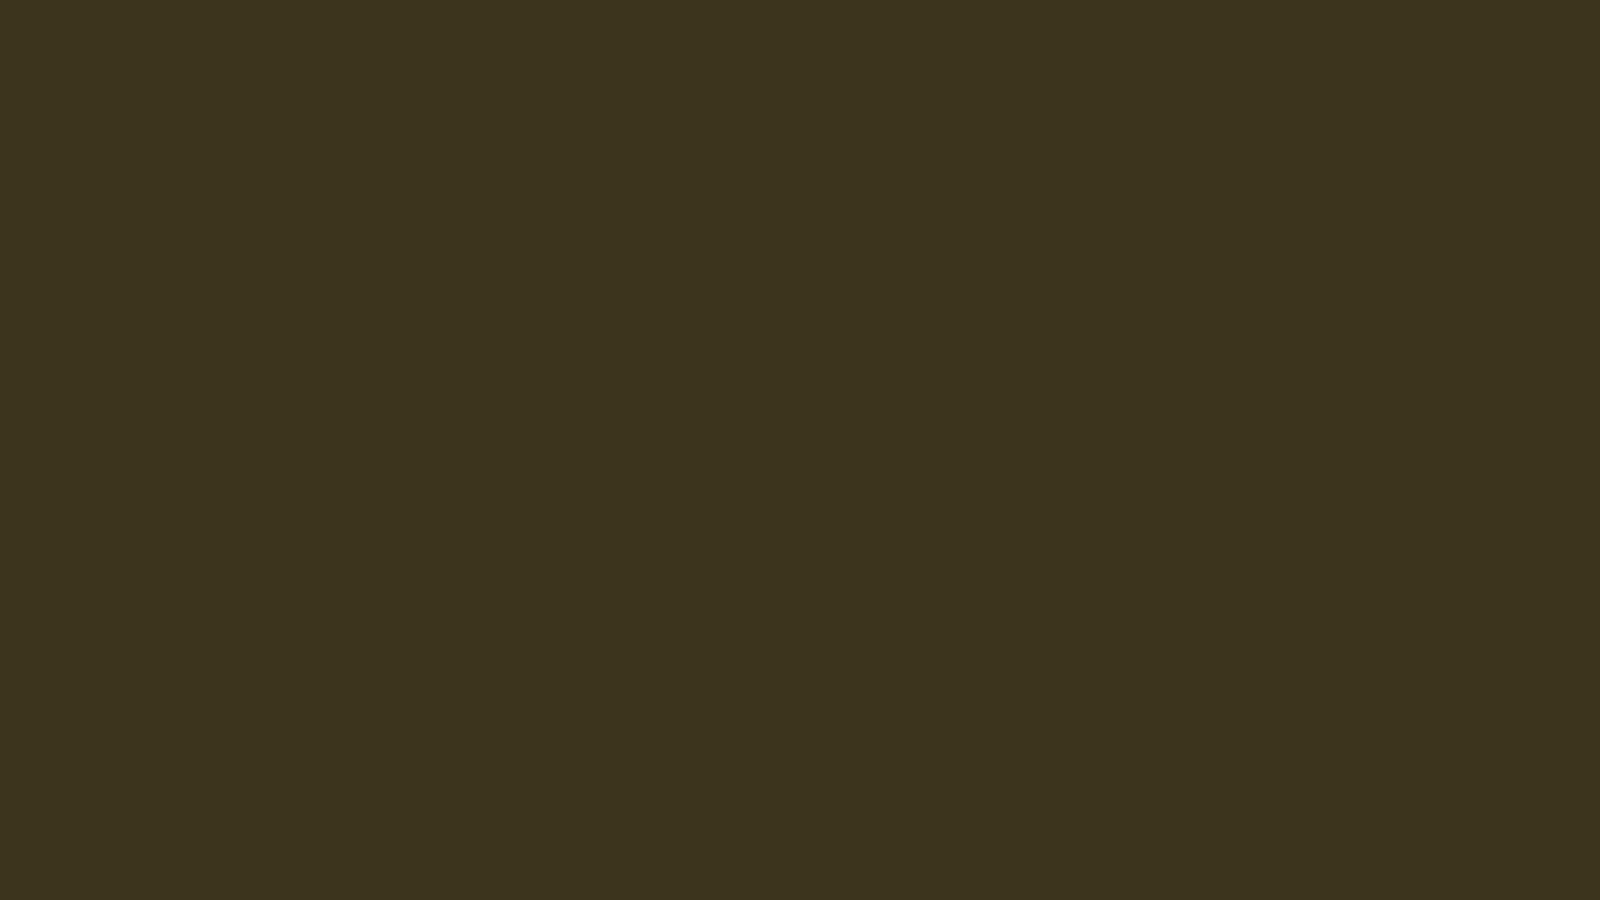 1600x900 Olive Drab Number Seven Solid Color Background